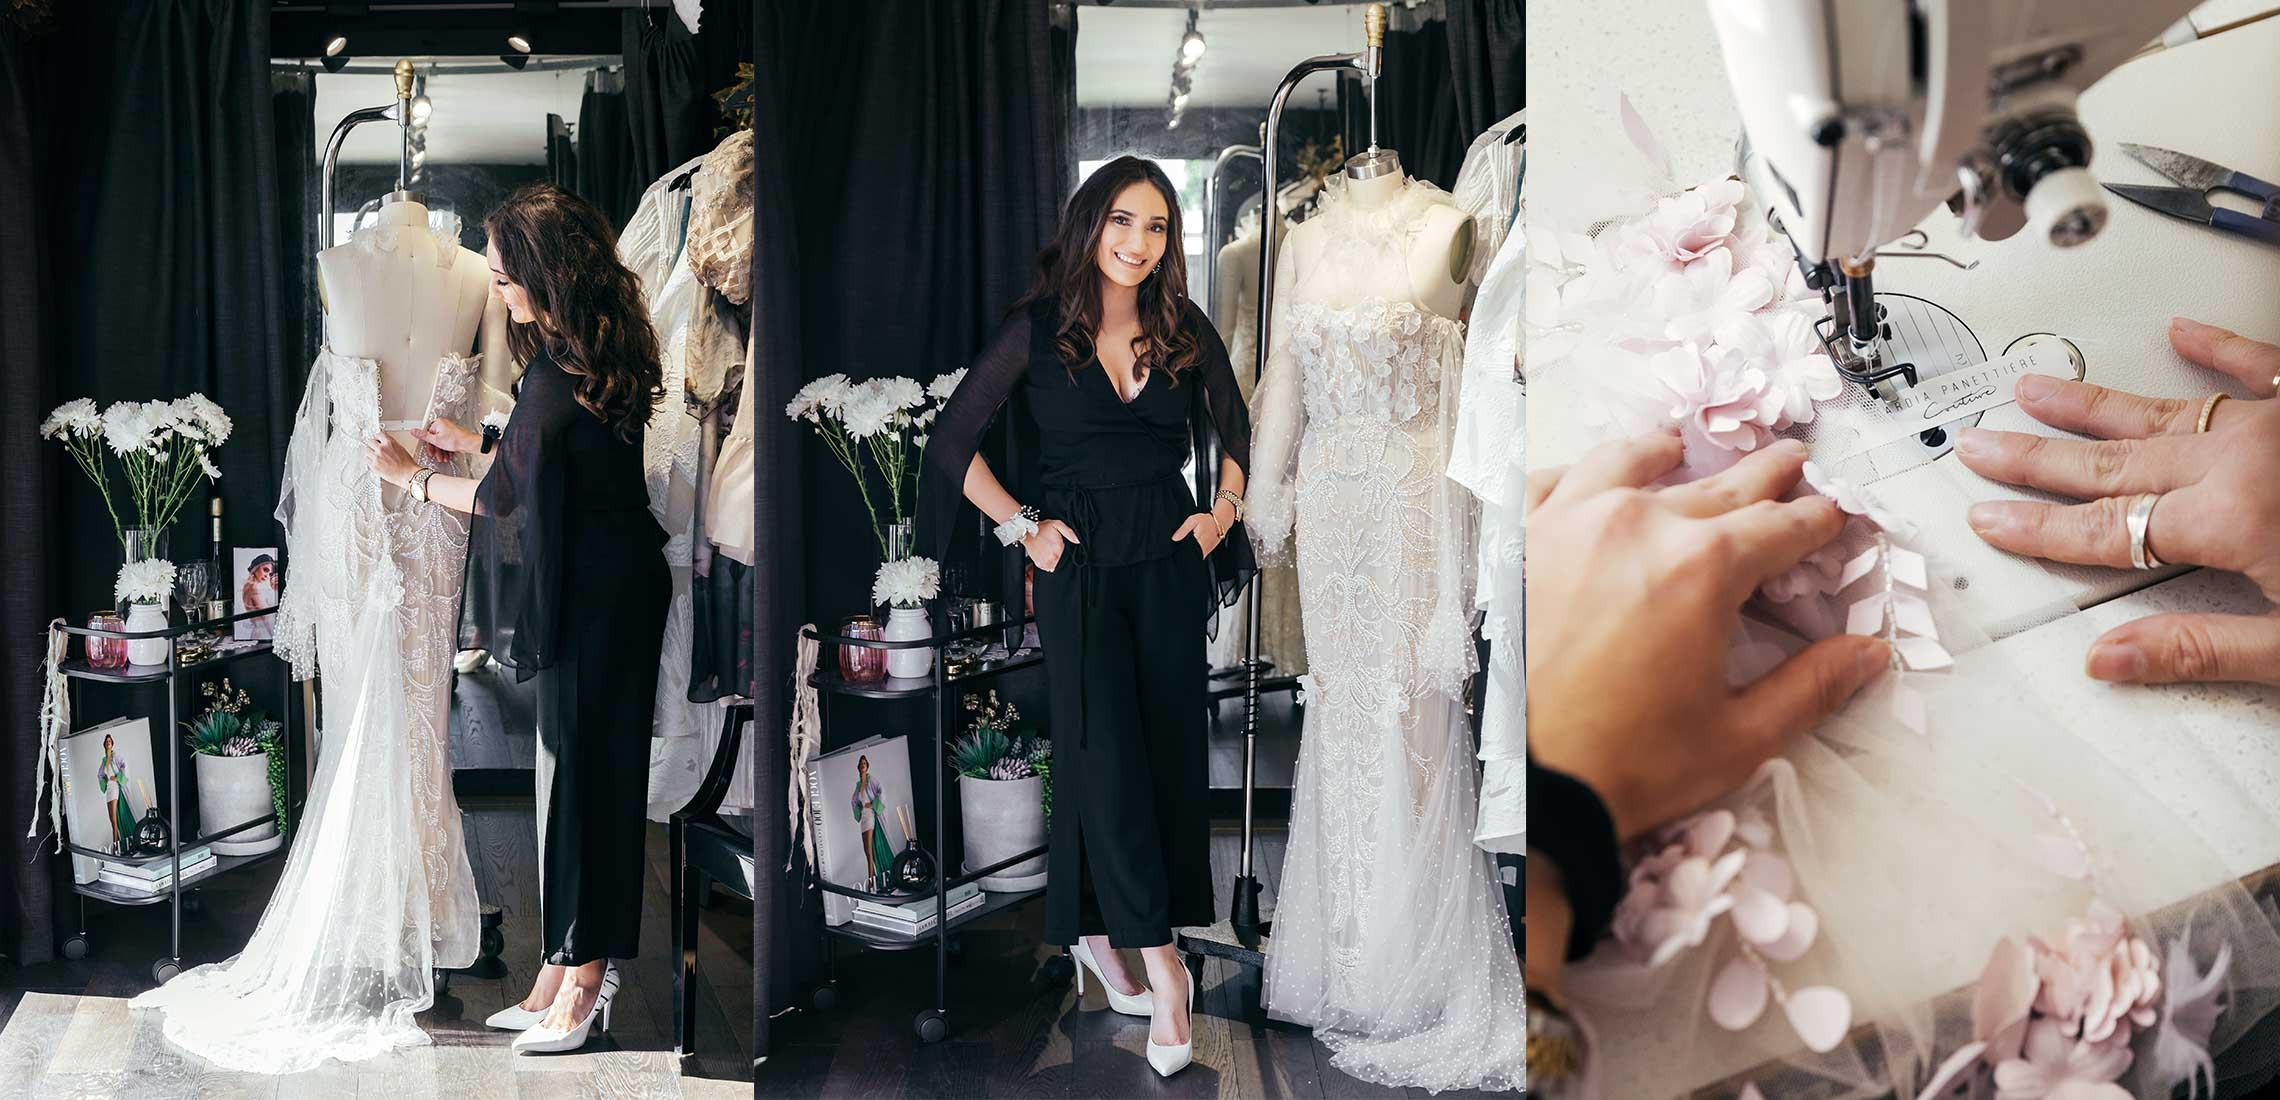 Nardia Pannettiere - A Designer of High End Couture Dresses posing with her works